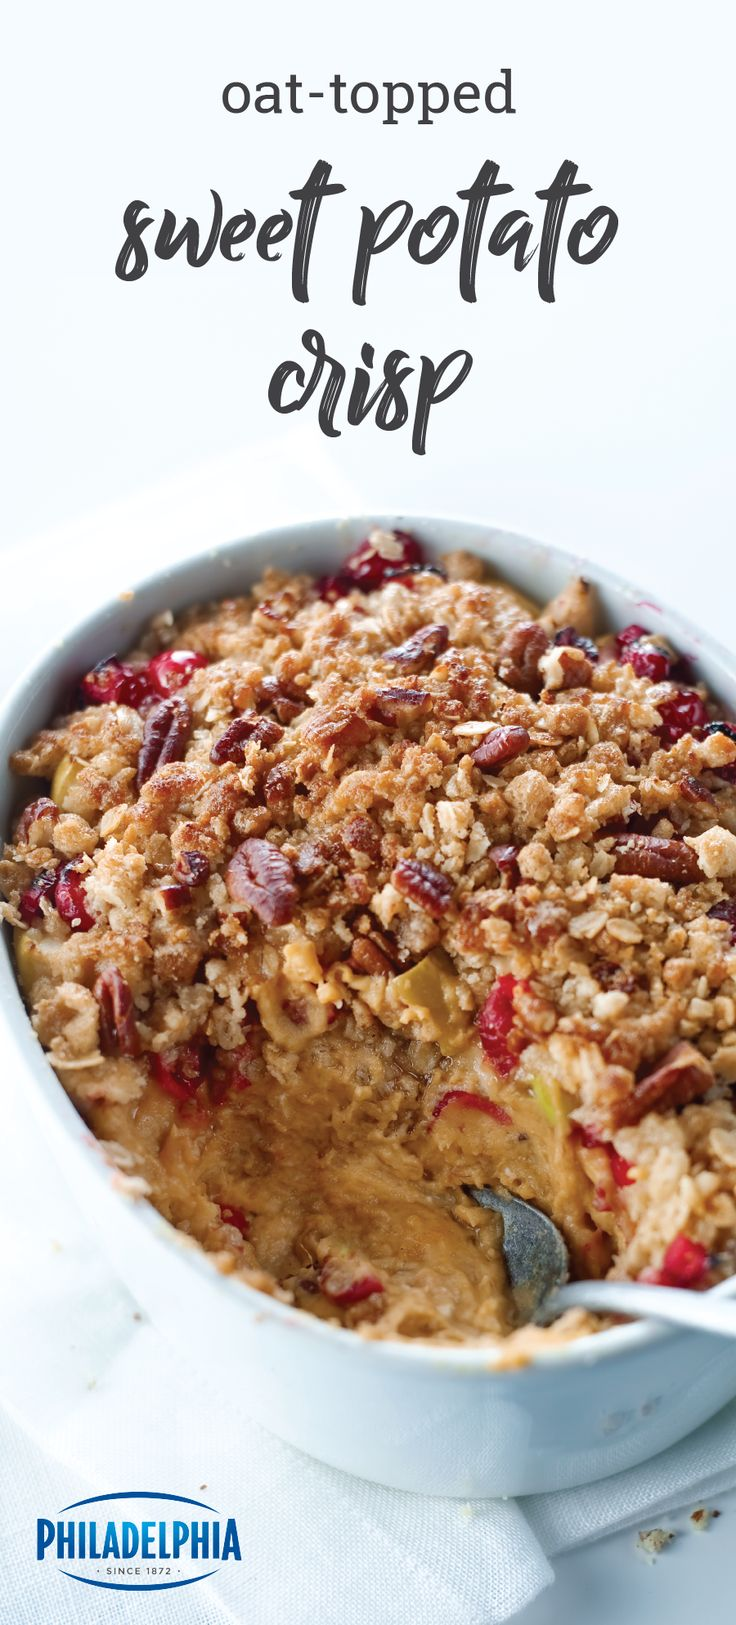 Oat-Topped Sweet Potato Crisp – What turkey? Made with brown sugar, cinnamon, cranberries, and apples, this delicious dessert or sweet side is quite the scene-stealer at the holiday table. We think you may just complete your Thanksgiving menu with this recipe!